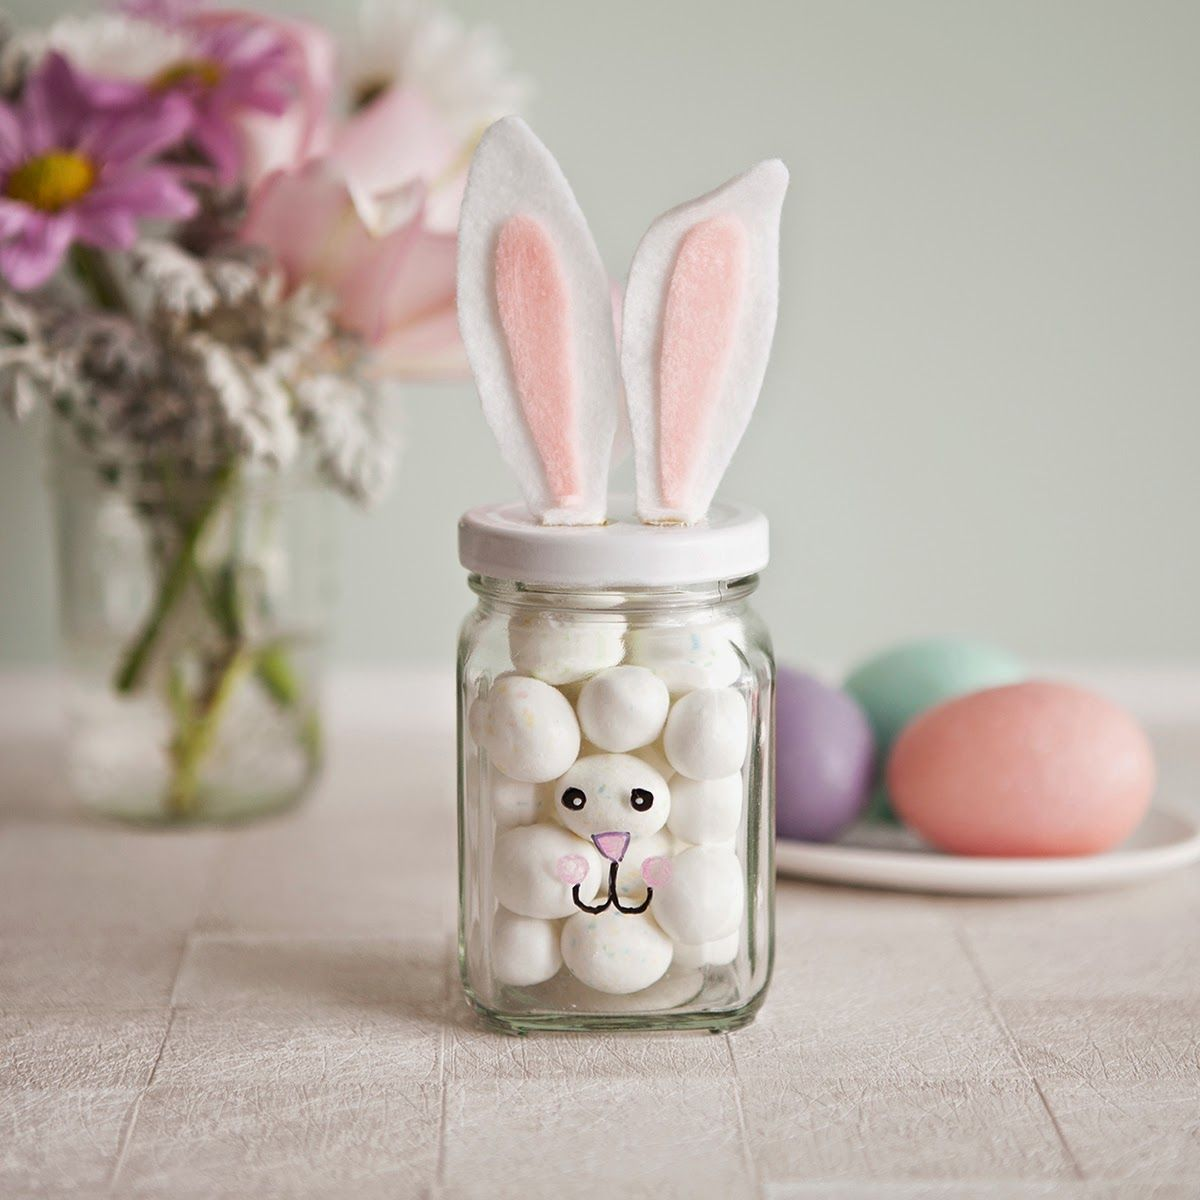 Decorar un bote de cristal para pascua crafts pinterest cake pastel easter bunny jars diy easter crafts for kids holiday gift ideas negle Image collections